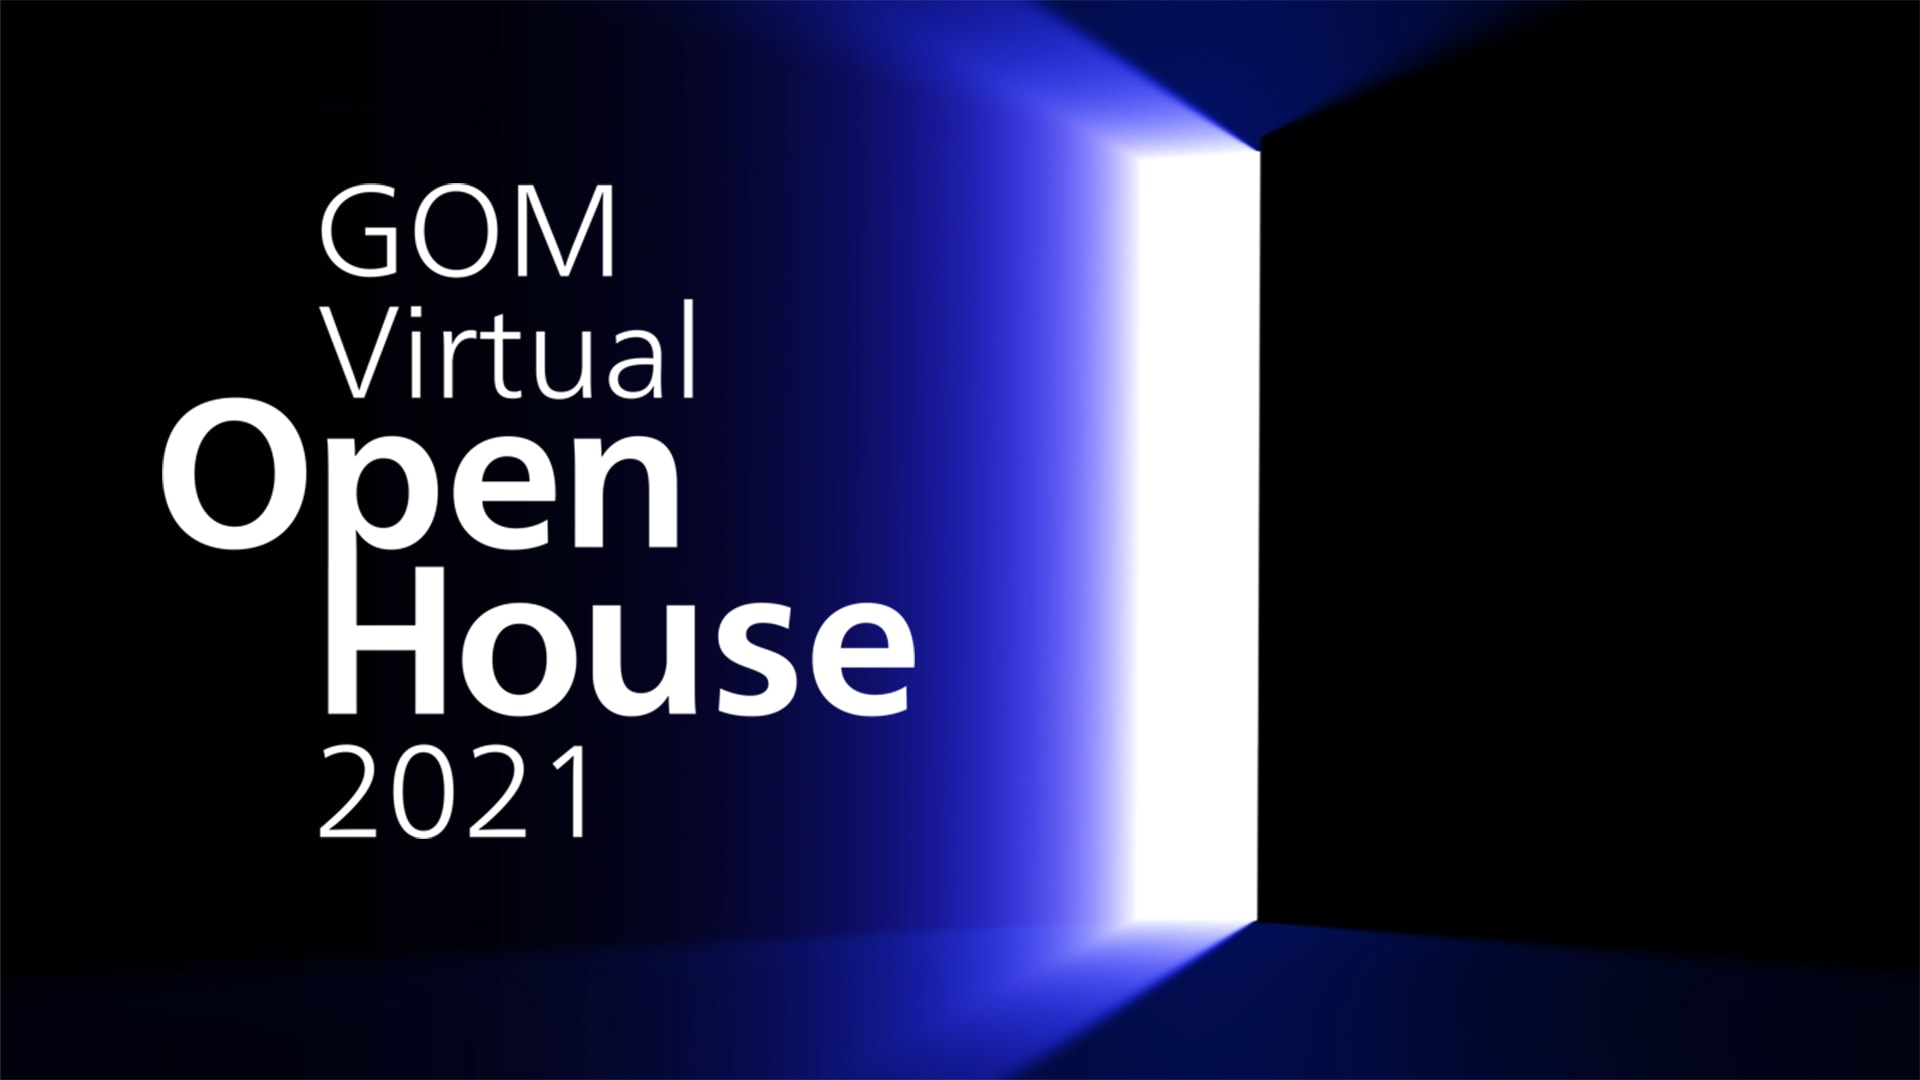 GOM Virtual Open House 2021